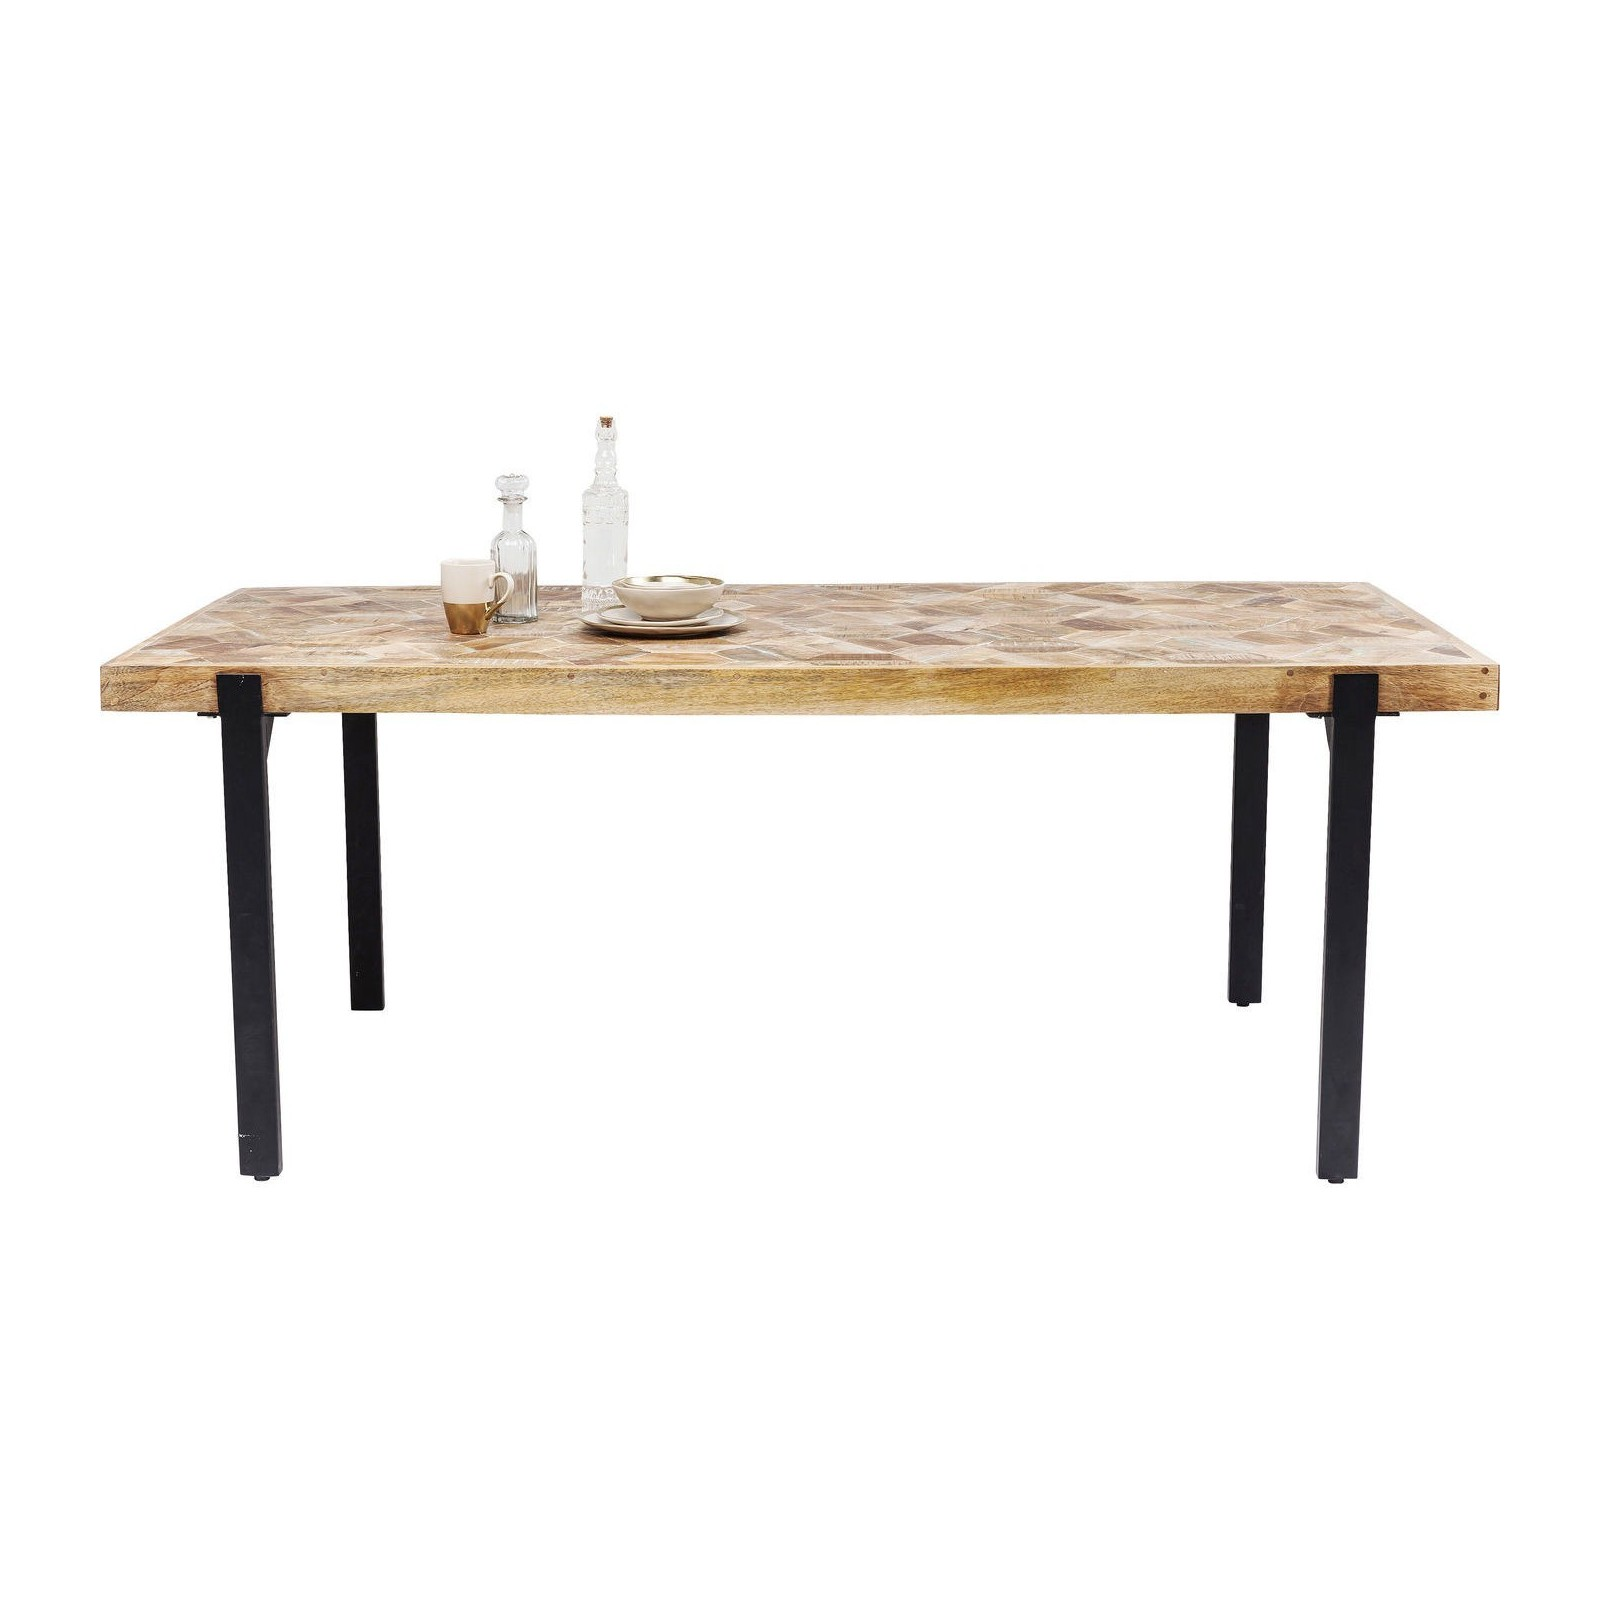 Table tortuga 200x100cm kare design - Table kare design ...